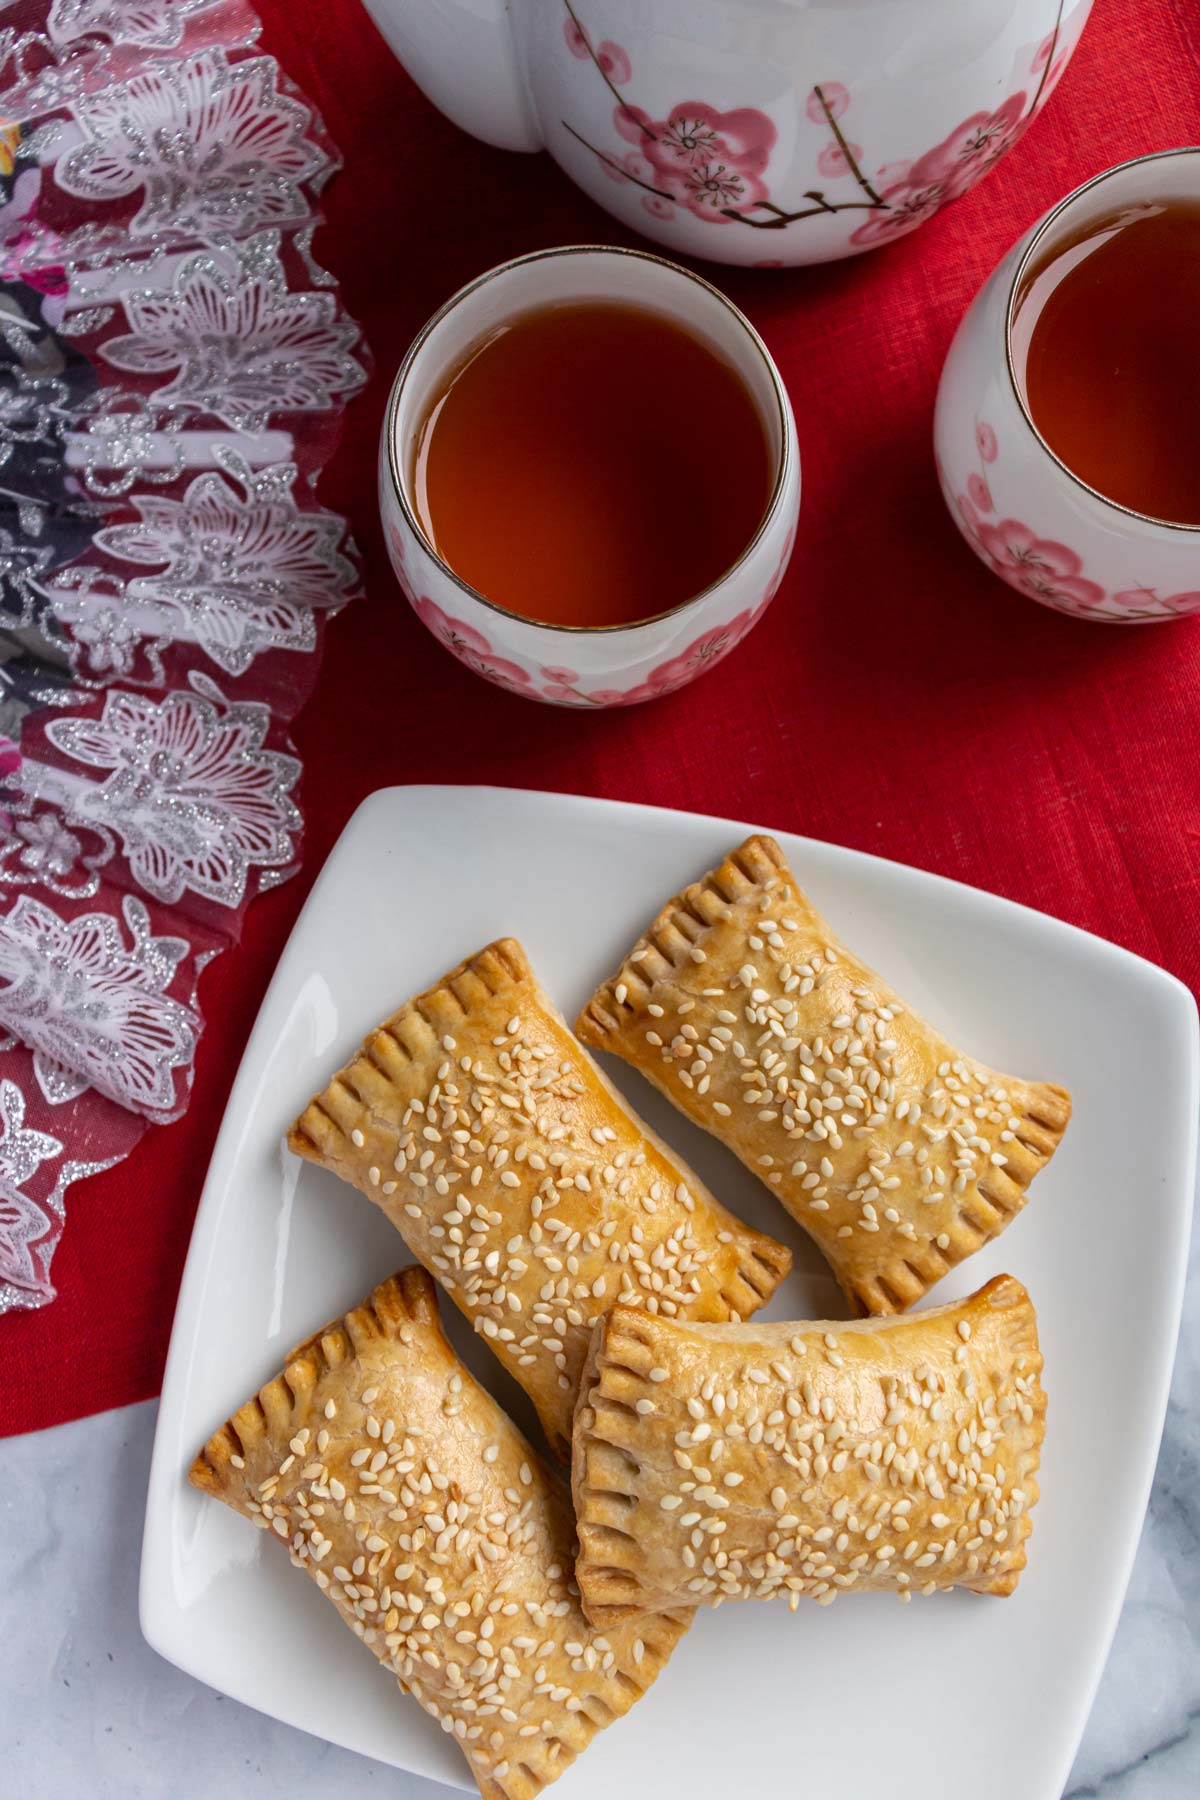 Four sesame seed topped Chinese pastries on a square white plate next to small tea cups.